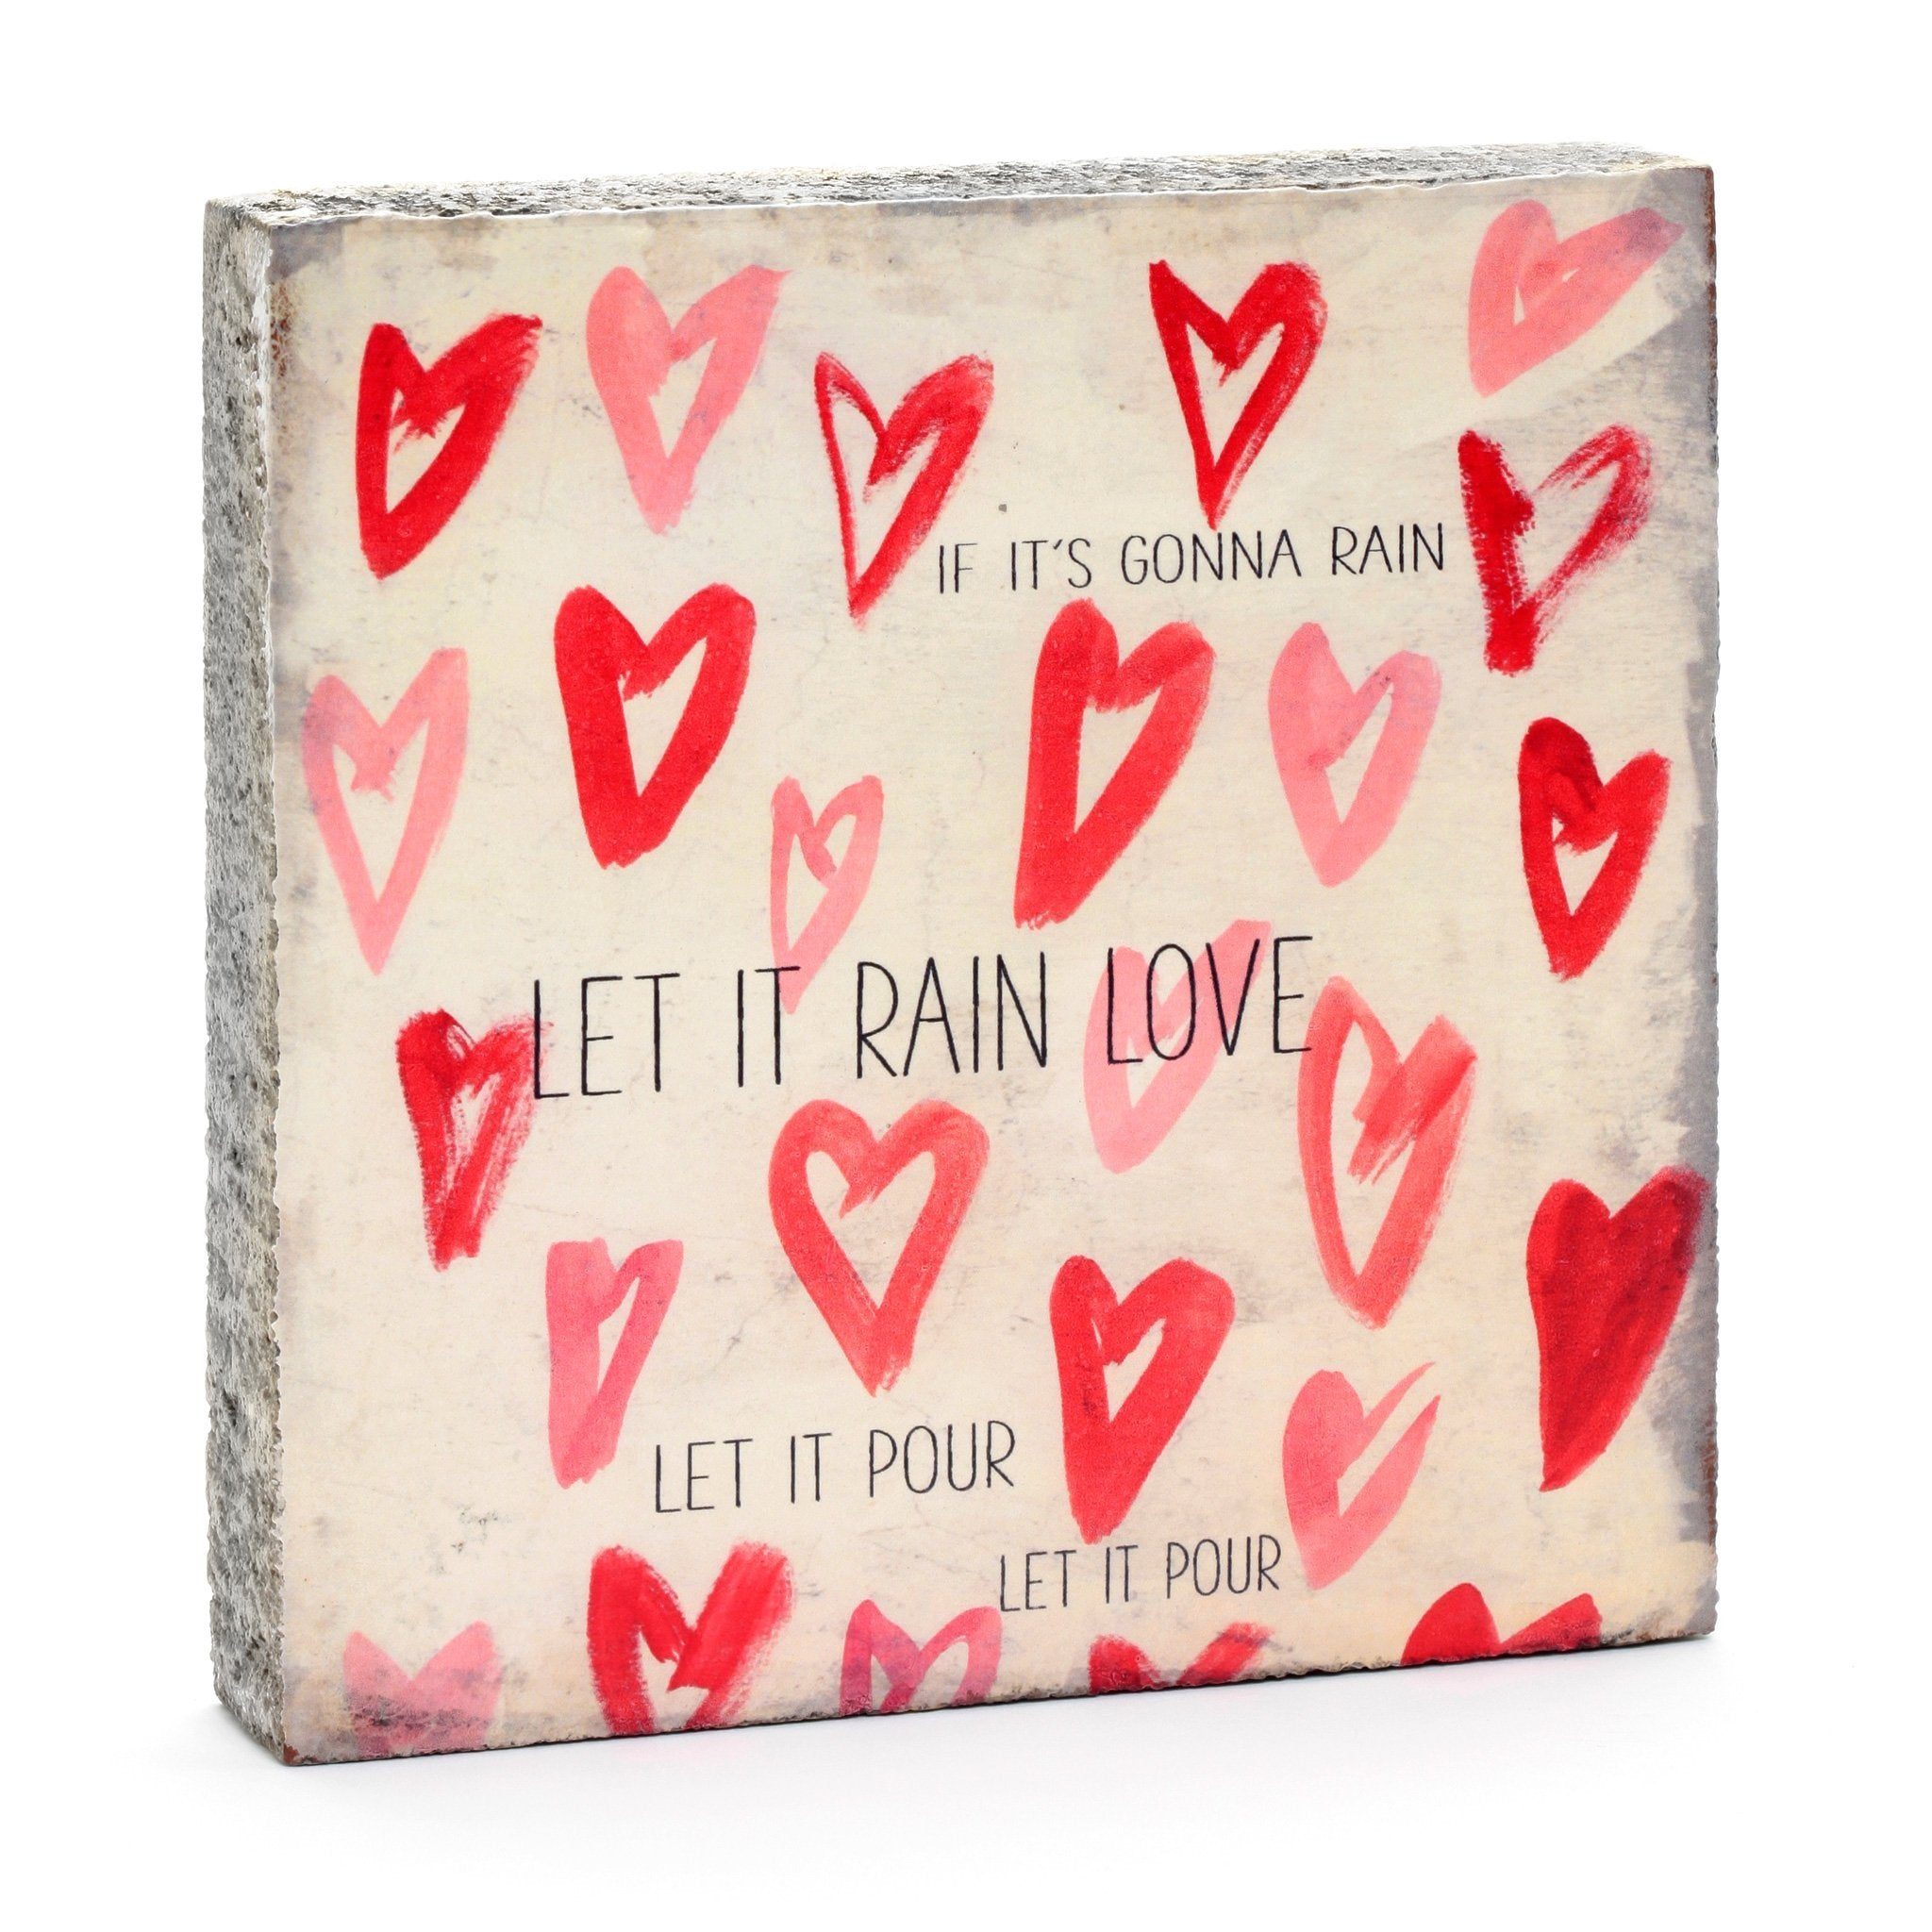 Wall Tile - Rain Love